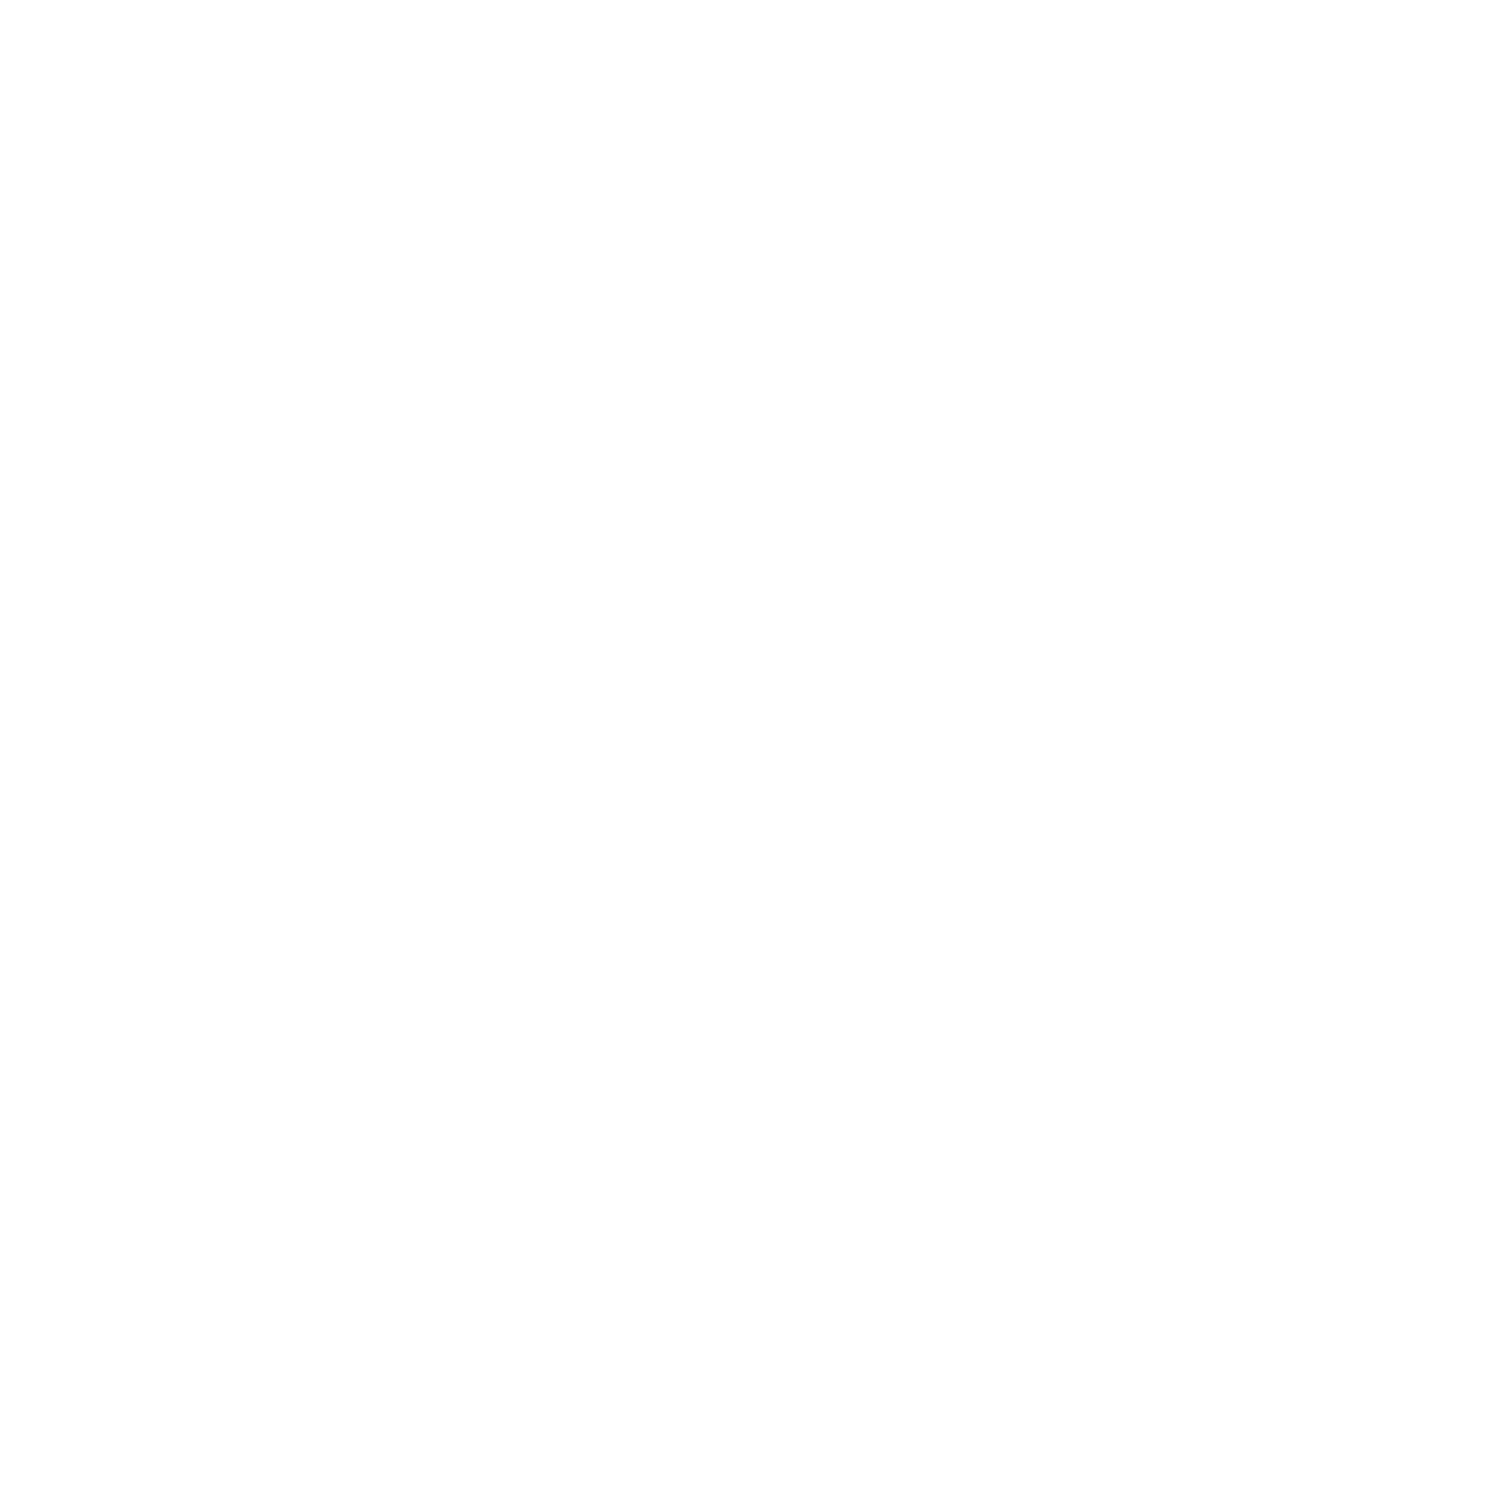 Julie's Bakery